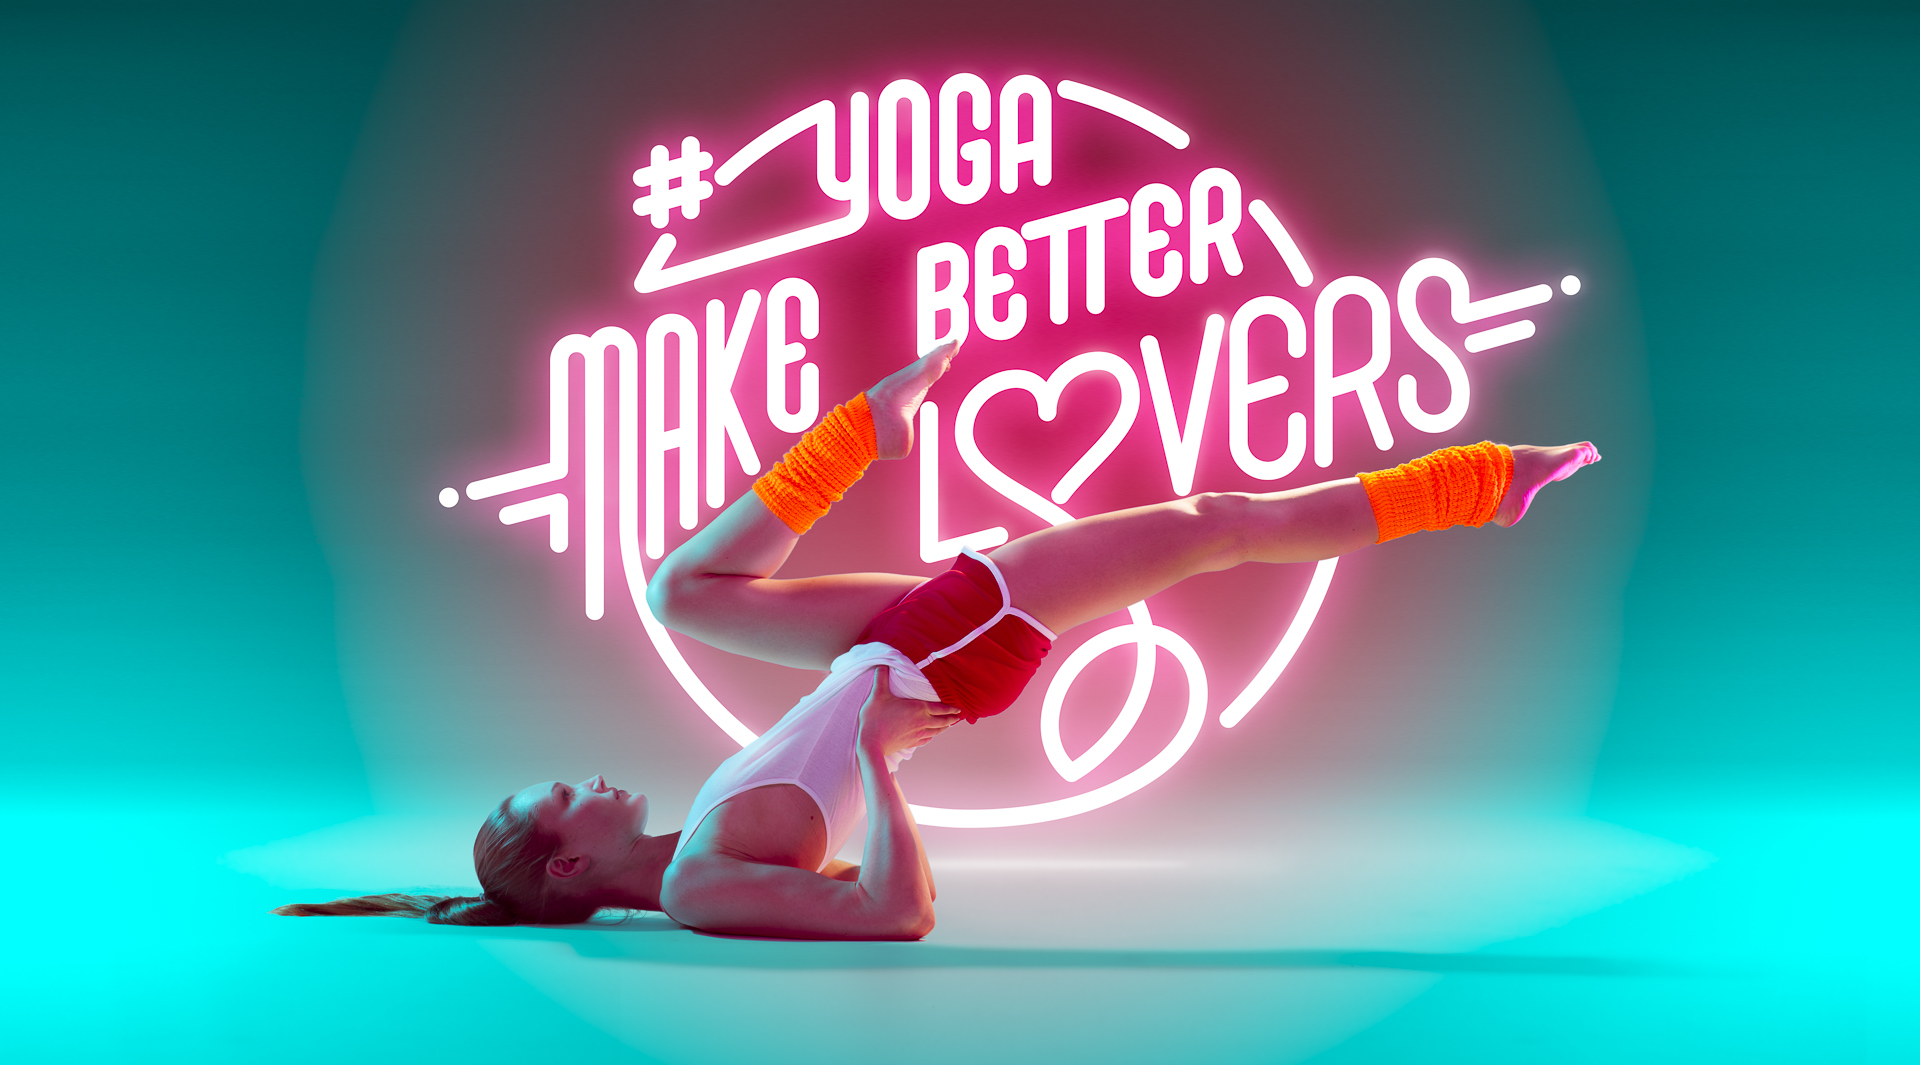 yoga-make-better-lovers_1920